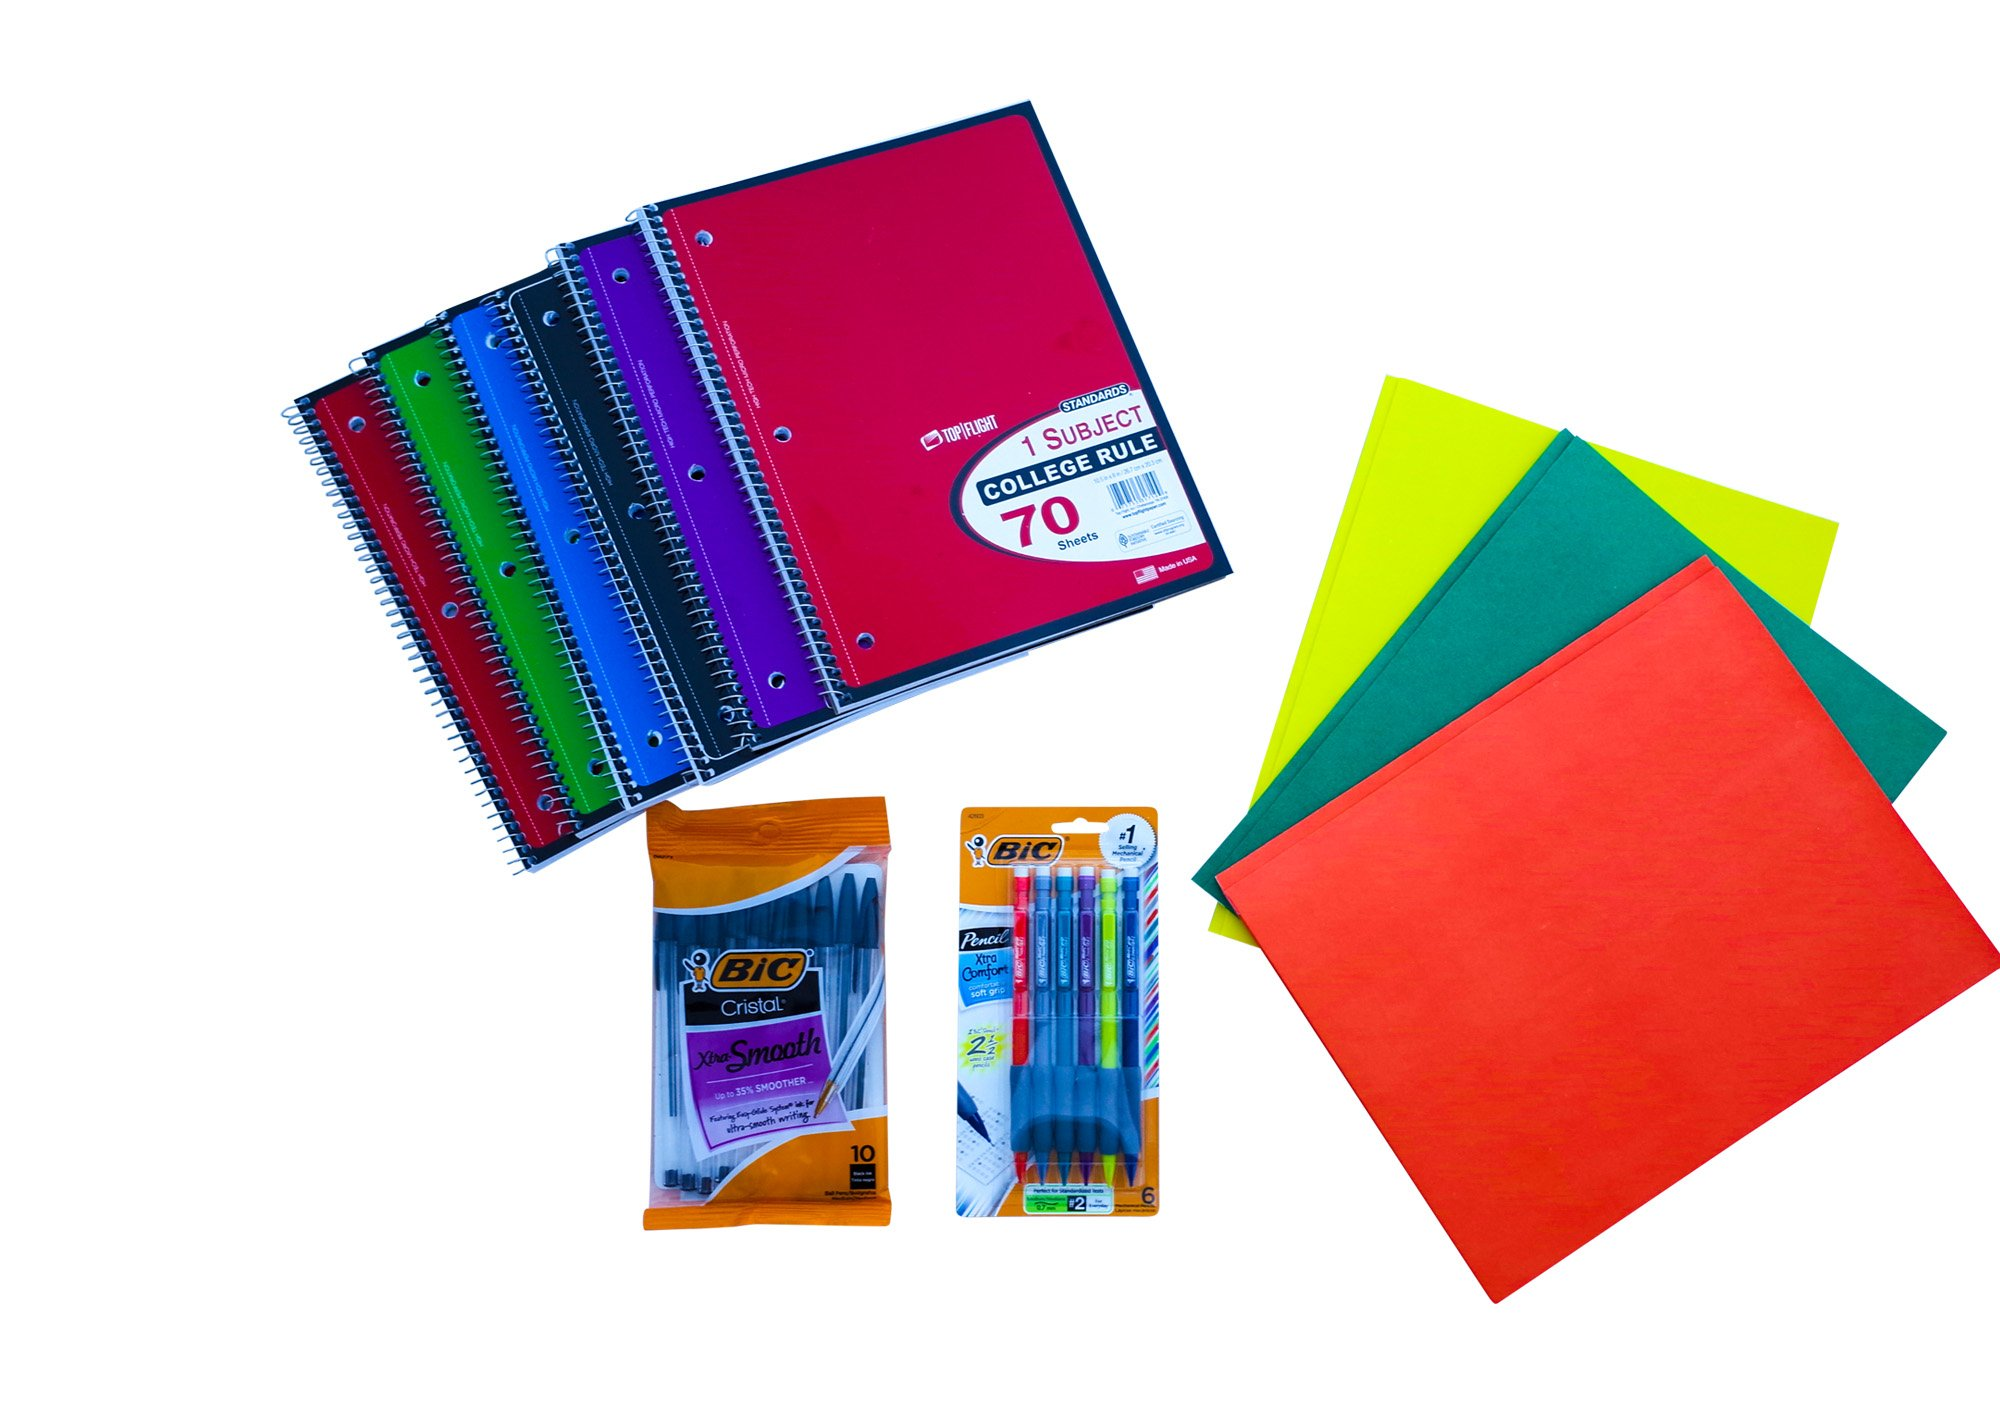 Back to School One-Subject Spiral College Ruled Notebooks, Mechanical Pencils, Black Pens and Folders School and Office Supplies Bundle - Middle, Junior, Intermediate, High School or College